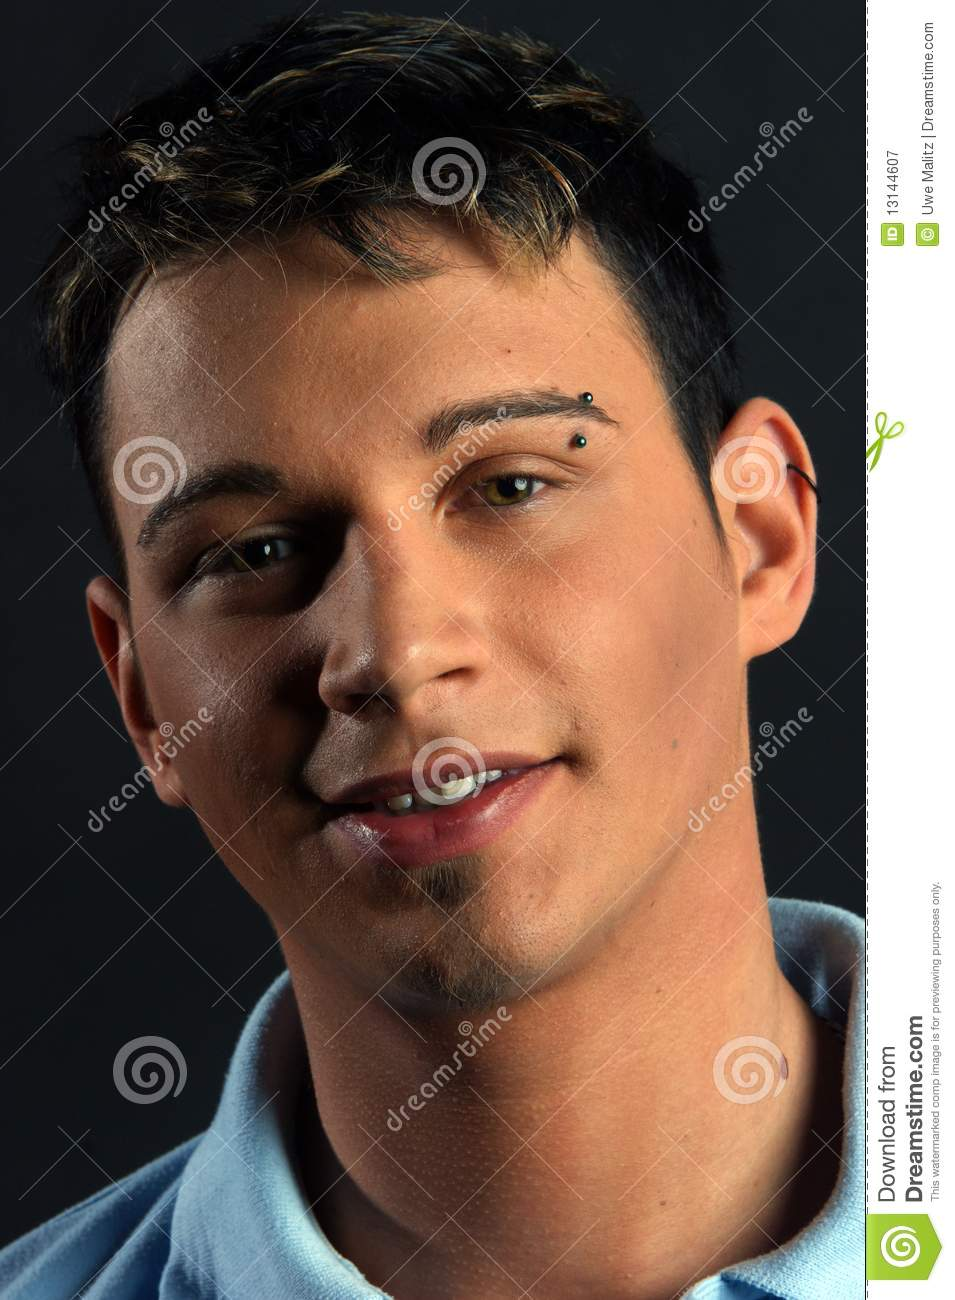 Young Man With Eyebrow Piercing Stock Image Image Of Sympathy